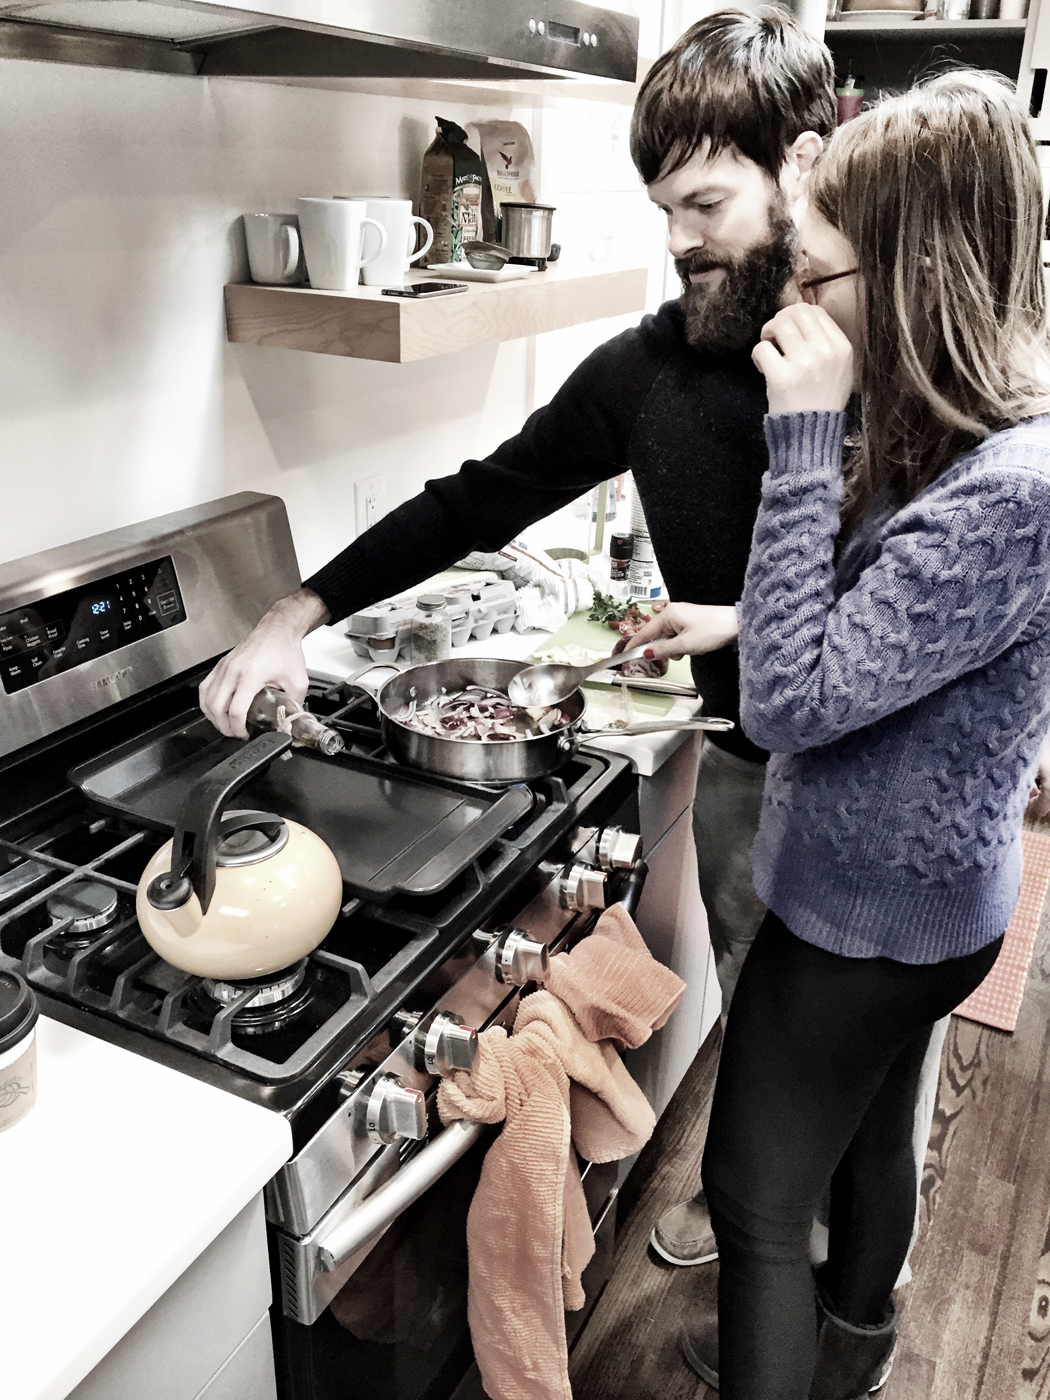 Do people usually photograph you when you're cooking?